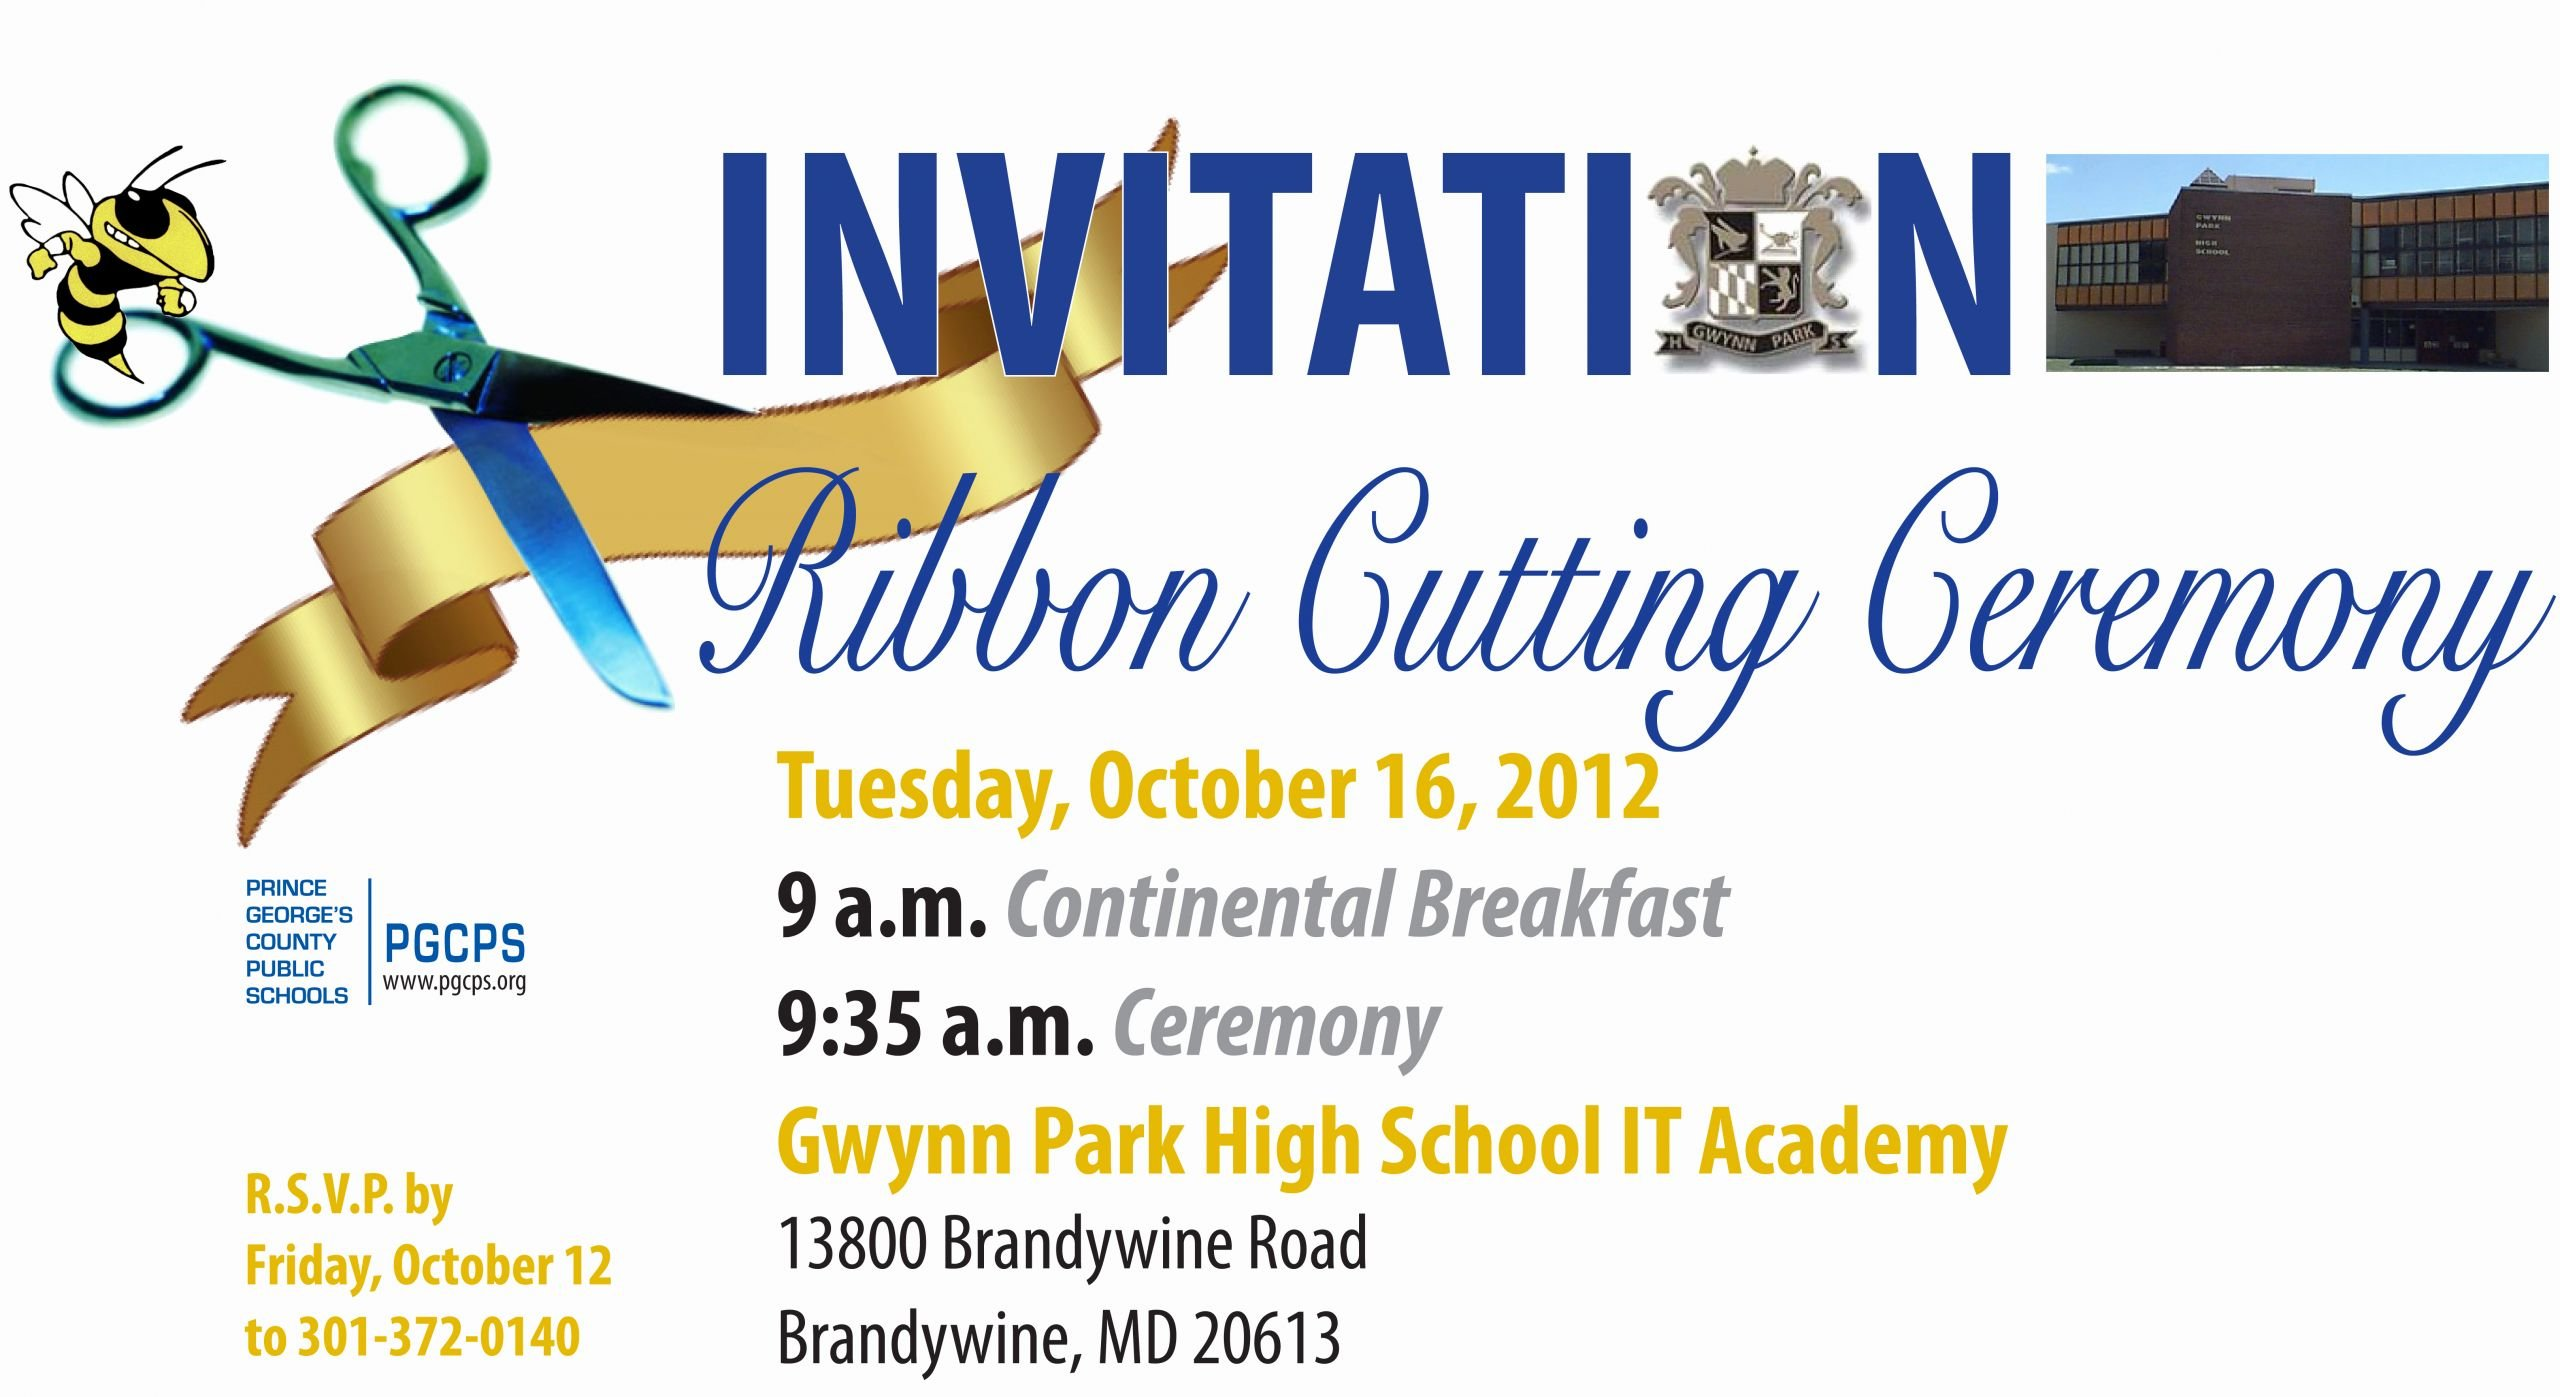 Ribbon Cutting Ceremony Invitation Template Lovely Gwynn Park Hs It Academy Ribbon Cutting Ceremony